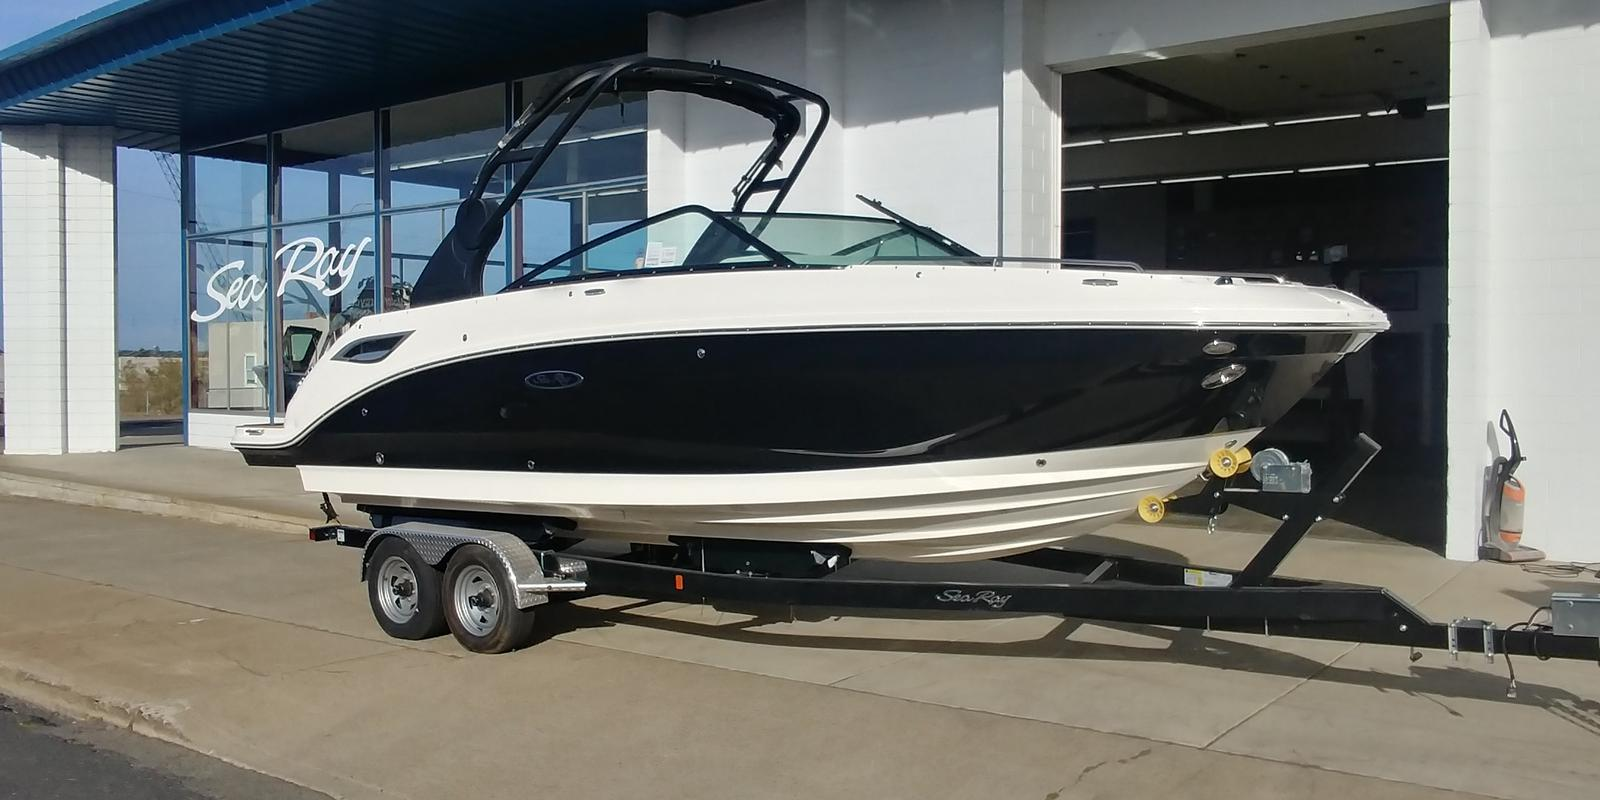 2018 SEA RAY 250 SDX for sale